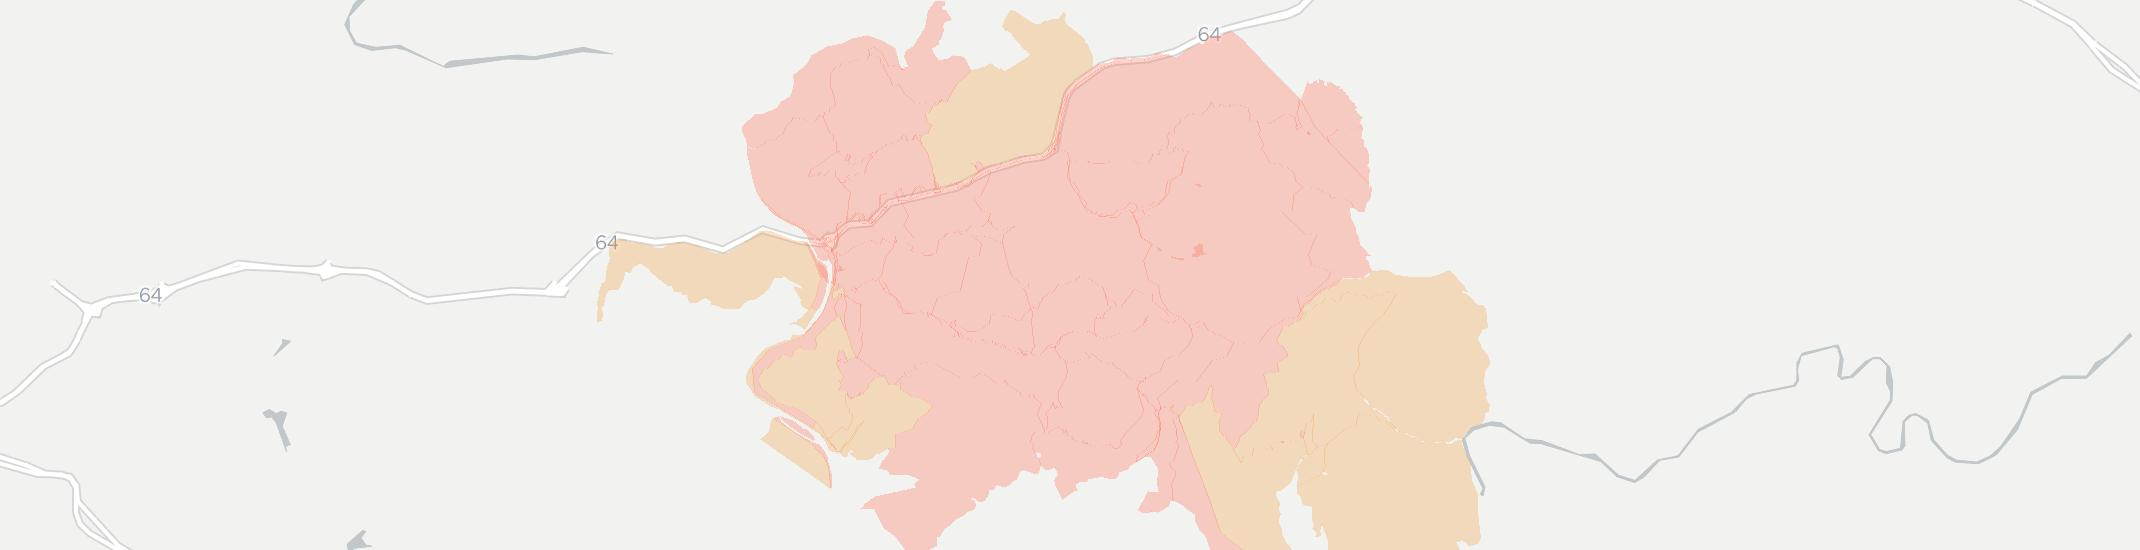 Sandstone Internet Competition Map. Click for interactive map.